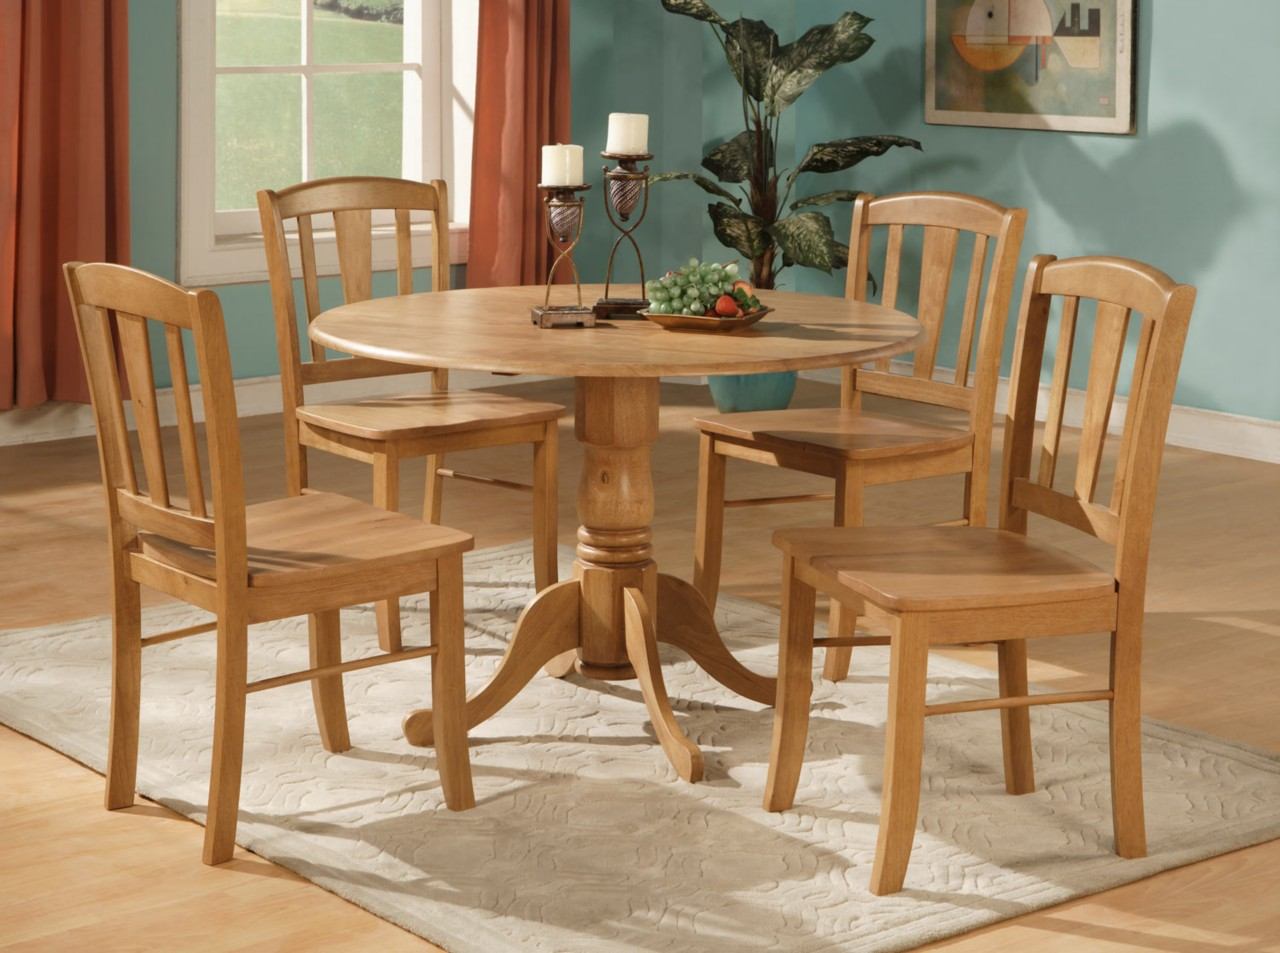 5pc round dinette kitchen dining set table and 4 chairs ebay for Small round wood kitchen table